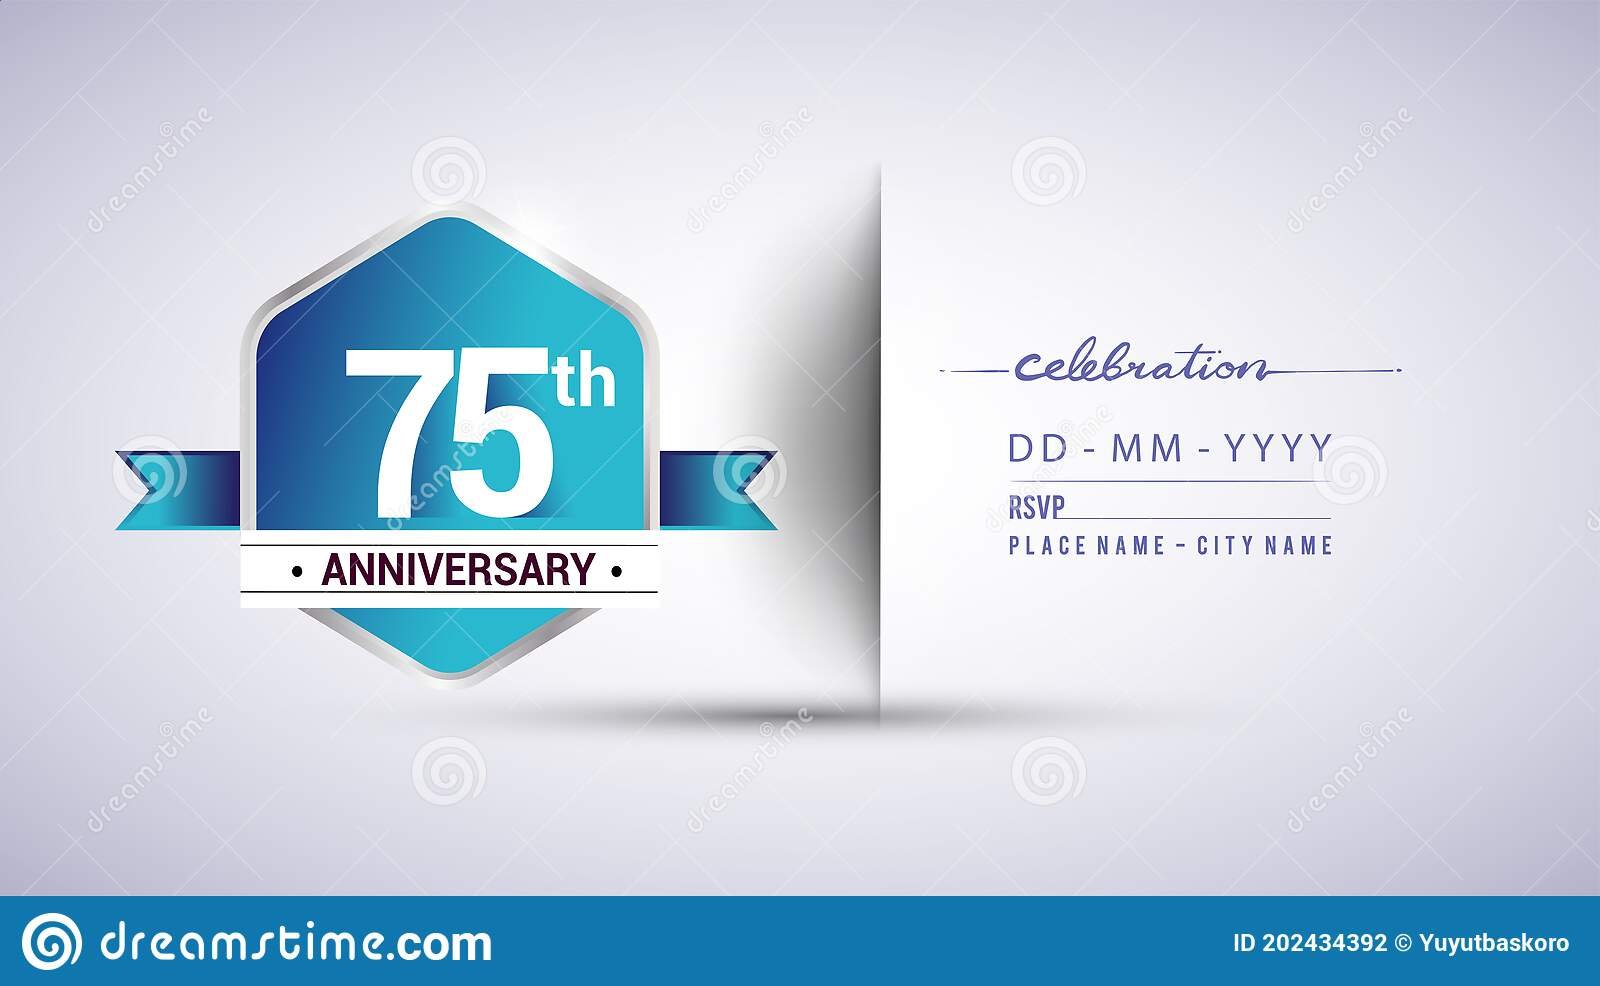 75th anniversary invitation card for birthday celebration isolated in blue hexagon shape vector design stock vector illustration of hexagonal party 202434392